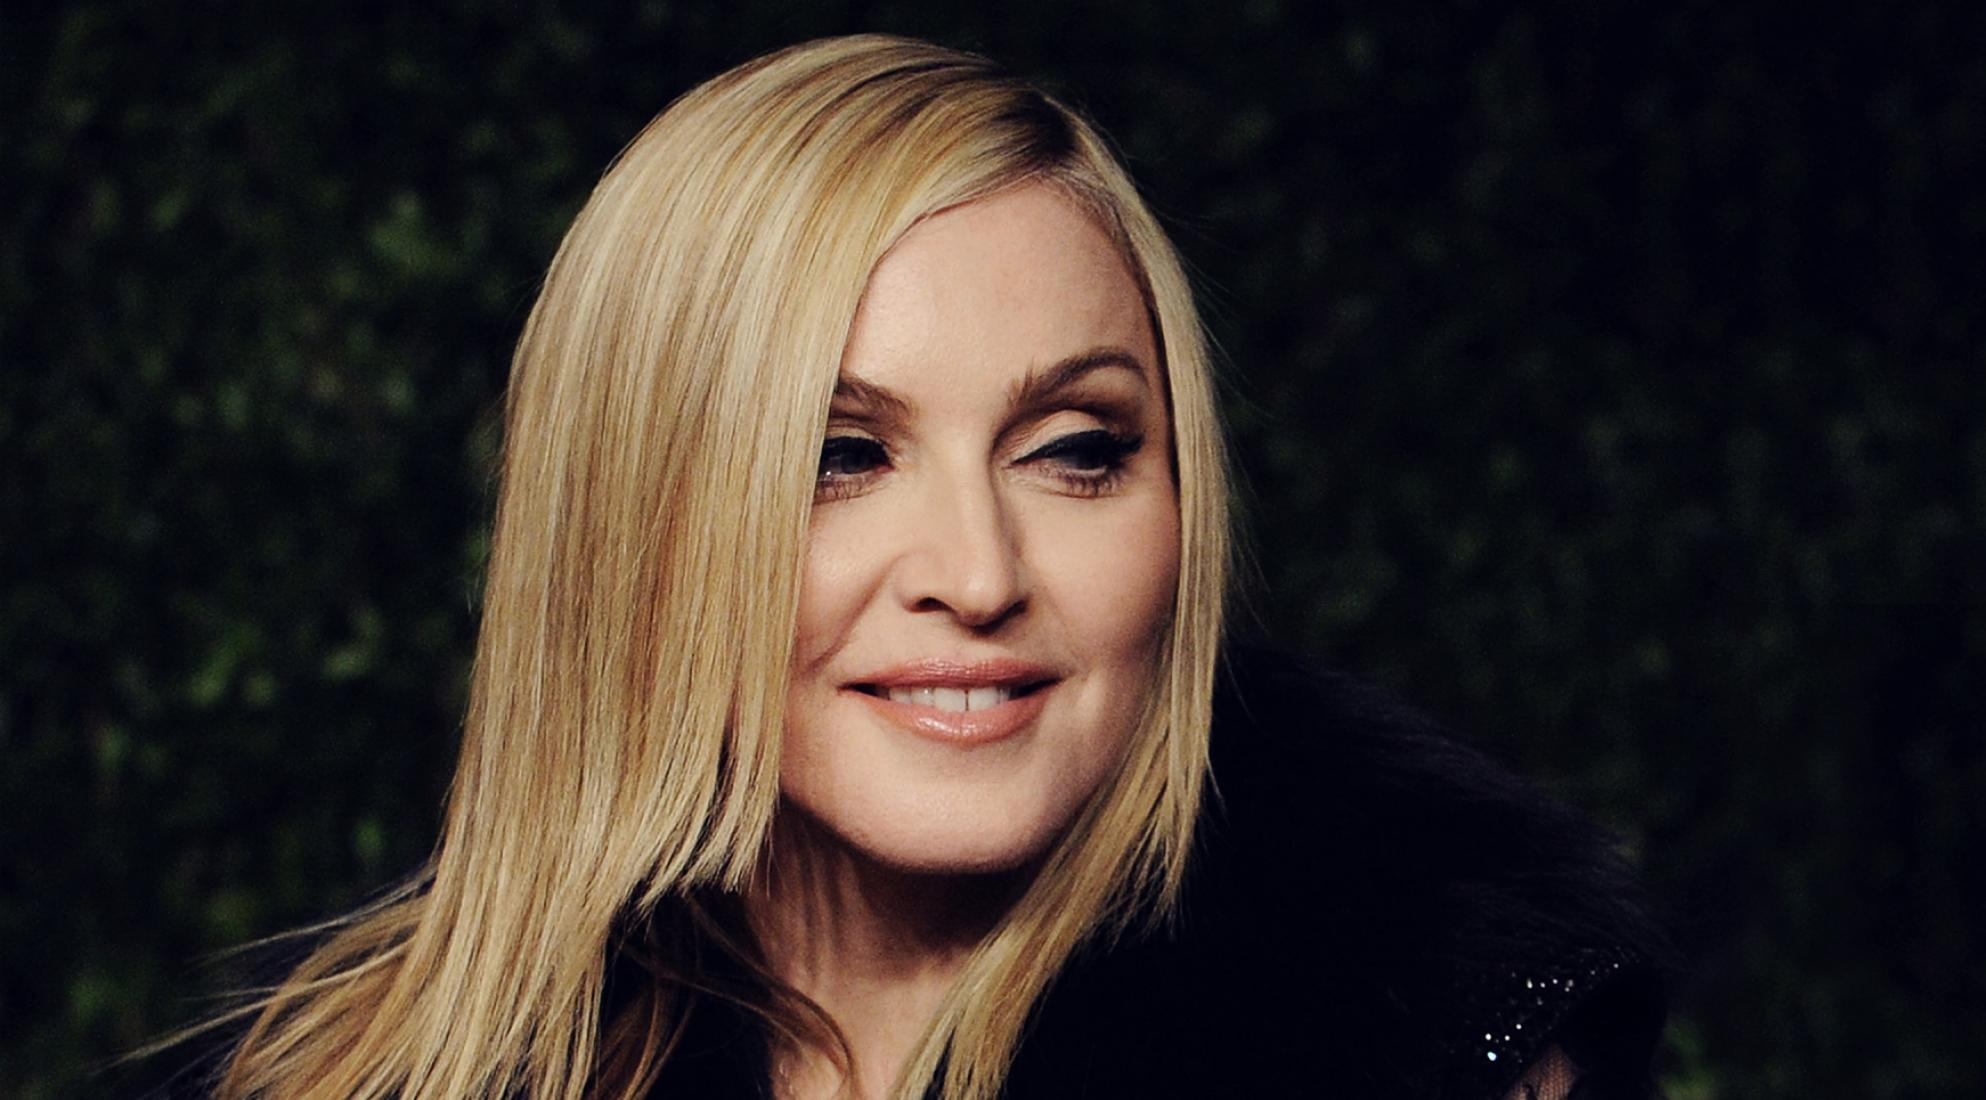 Madonna - The Pop Queen worked in the Dunkin Donuts and other places before the fame